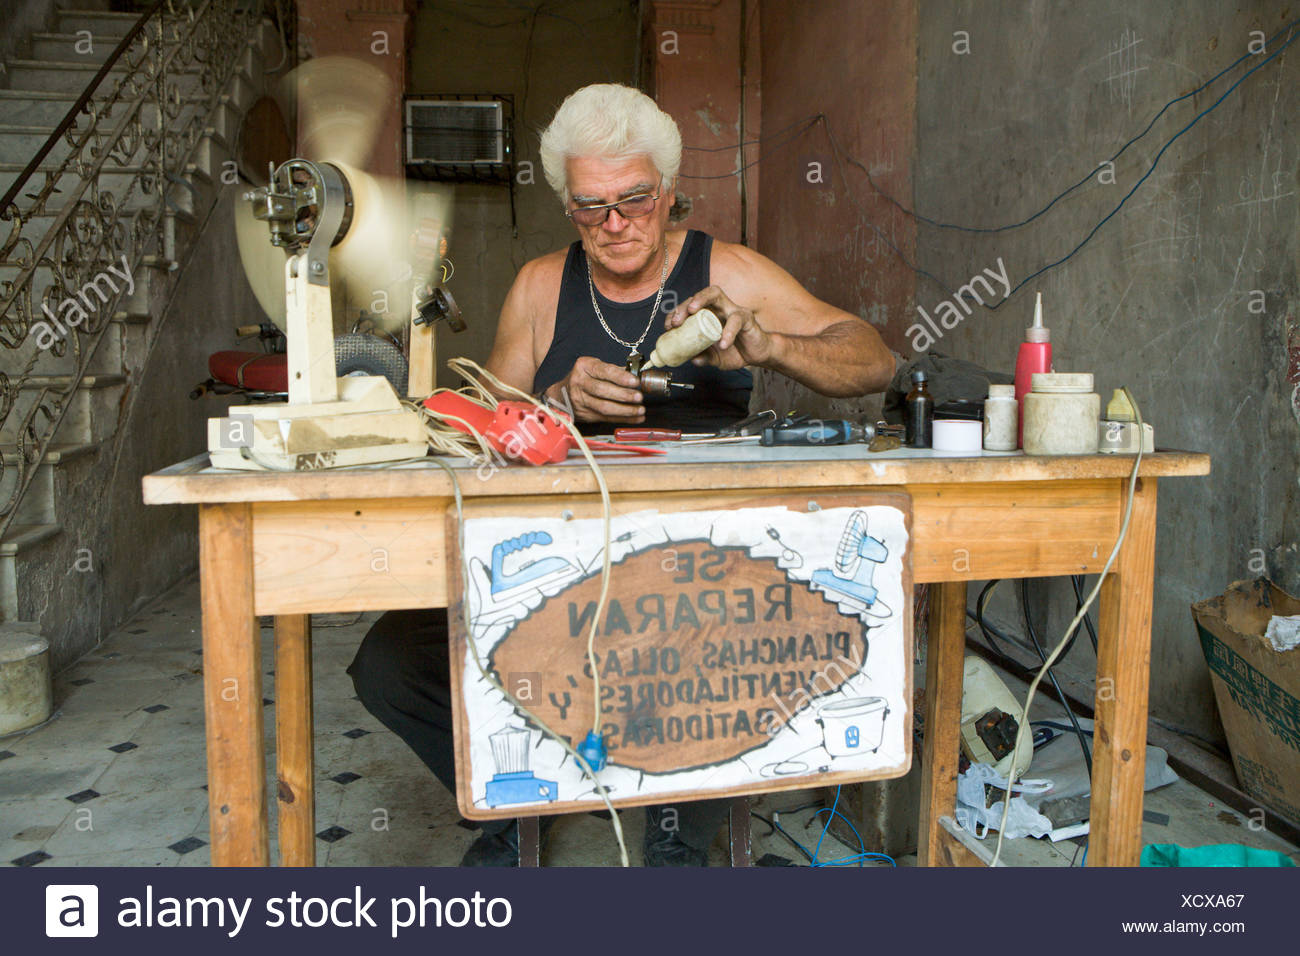 Small businessman, a repair service for household goods and electrical appliances such as irons, fans, pots, blenders Stock Photo